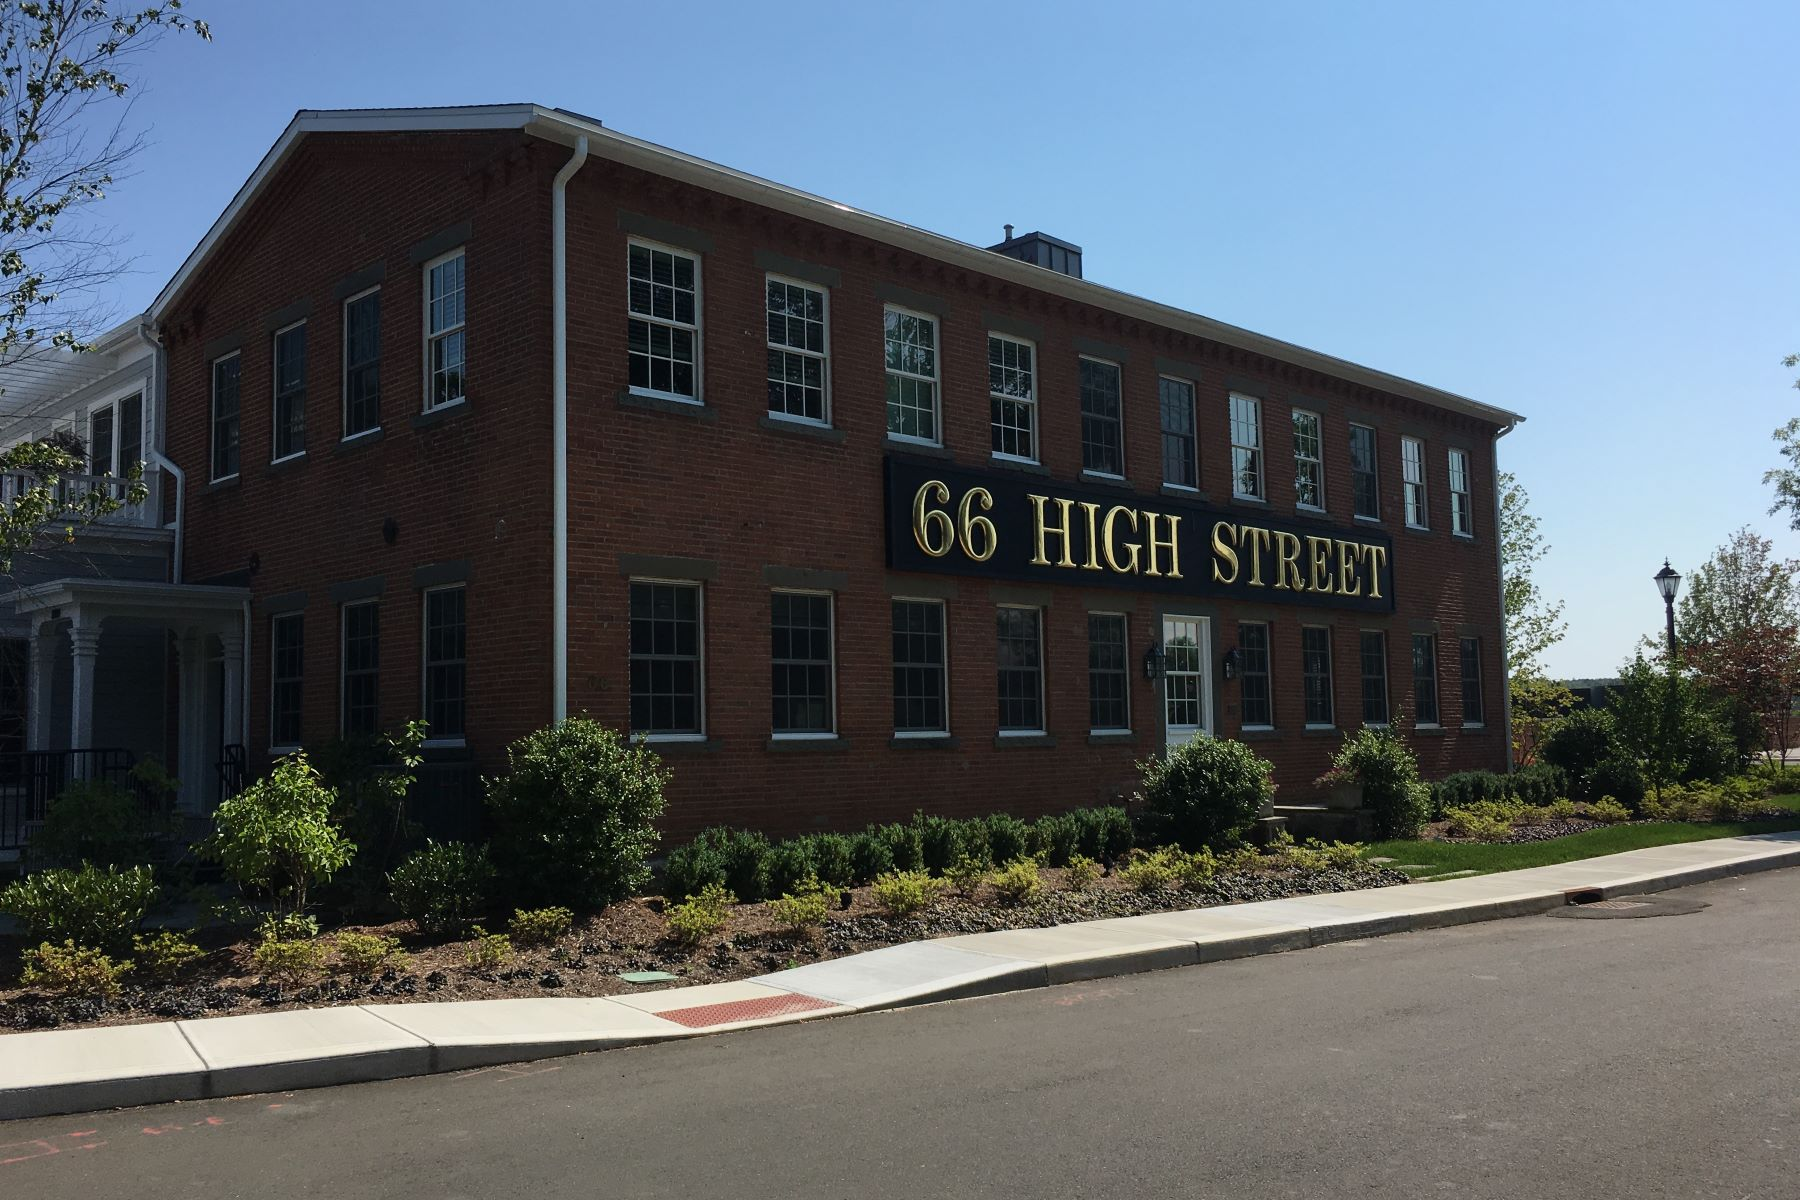 Condominium for Rent at 66 High Street 66 High Street 15 Guilford, Connecticut, 06437 United States